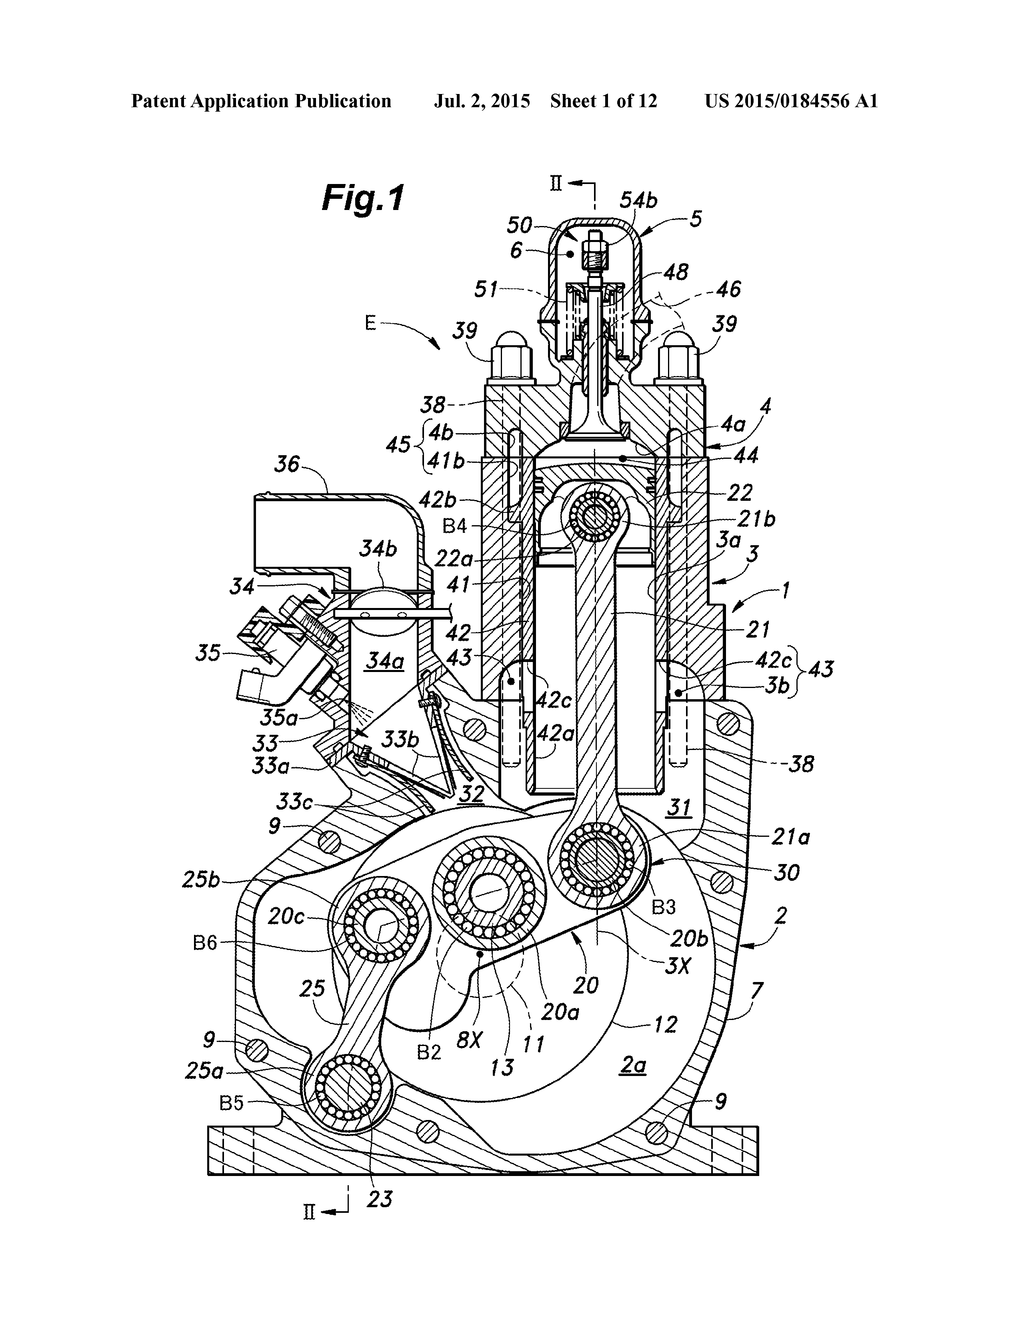 Ohv Engine Diagram Wiring Schemes V6 Variable Valve Actuating Mechanism For Rh Patentsencyclopedia Com Tecumseh 12 Hp